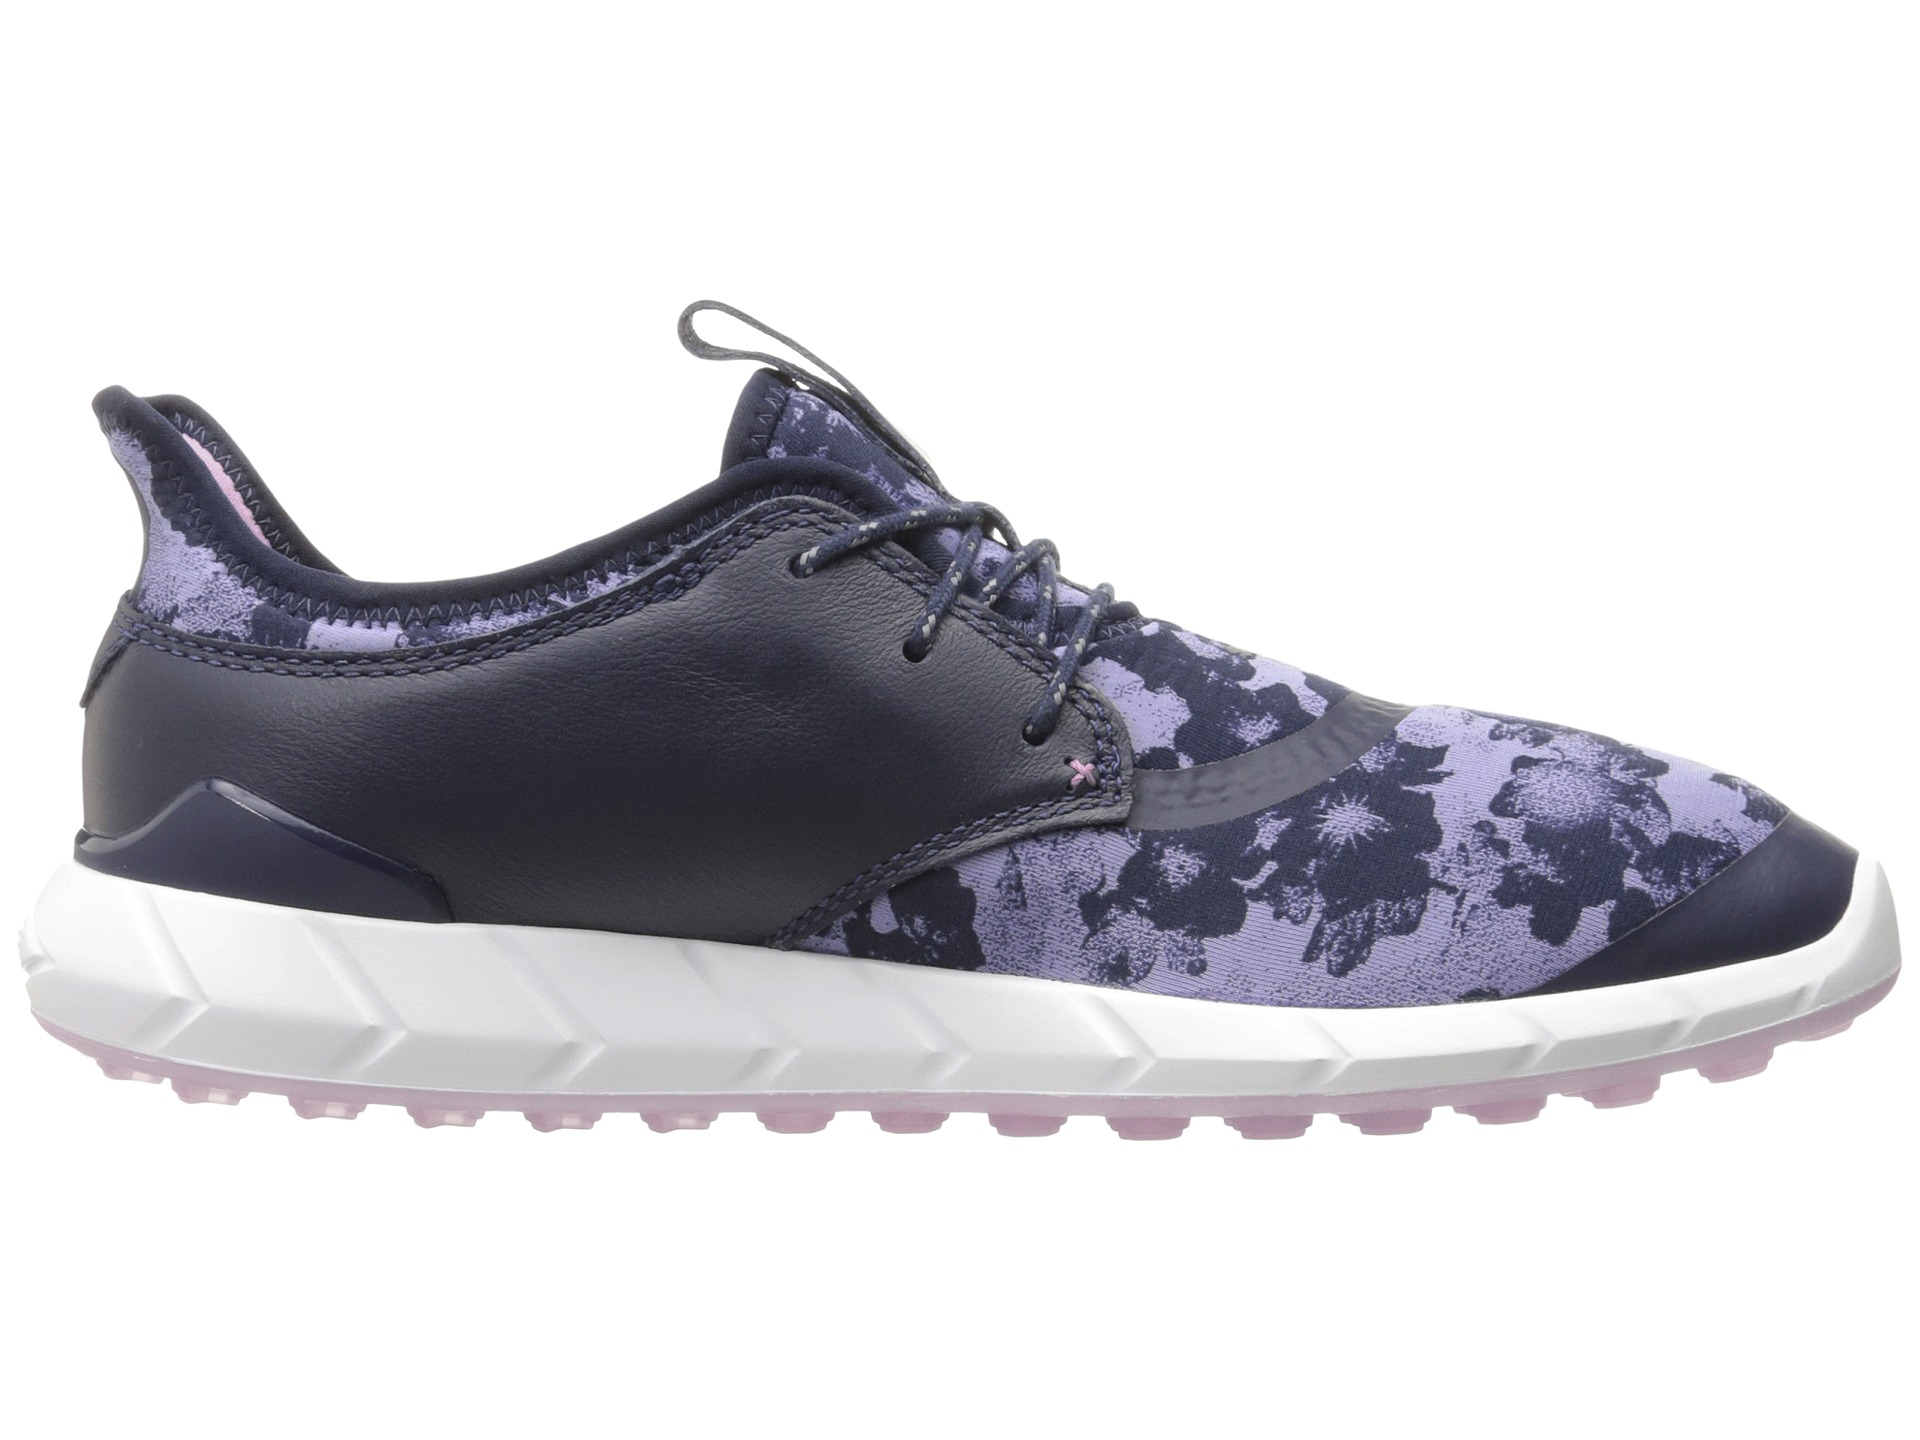 Zappos Spikeless Golf Shoes